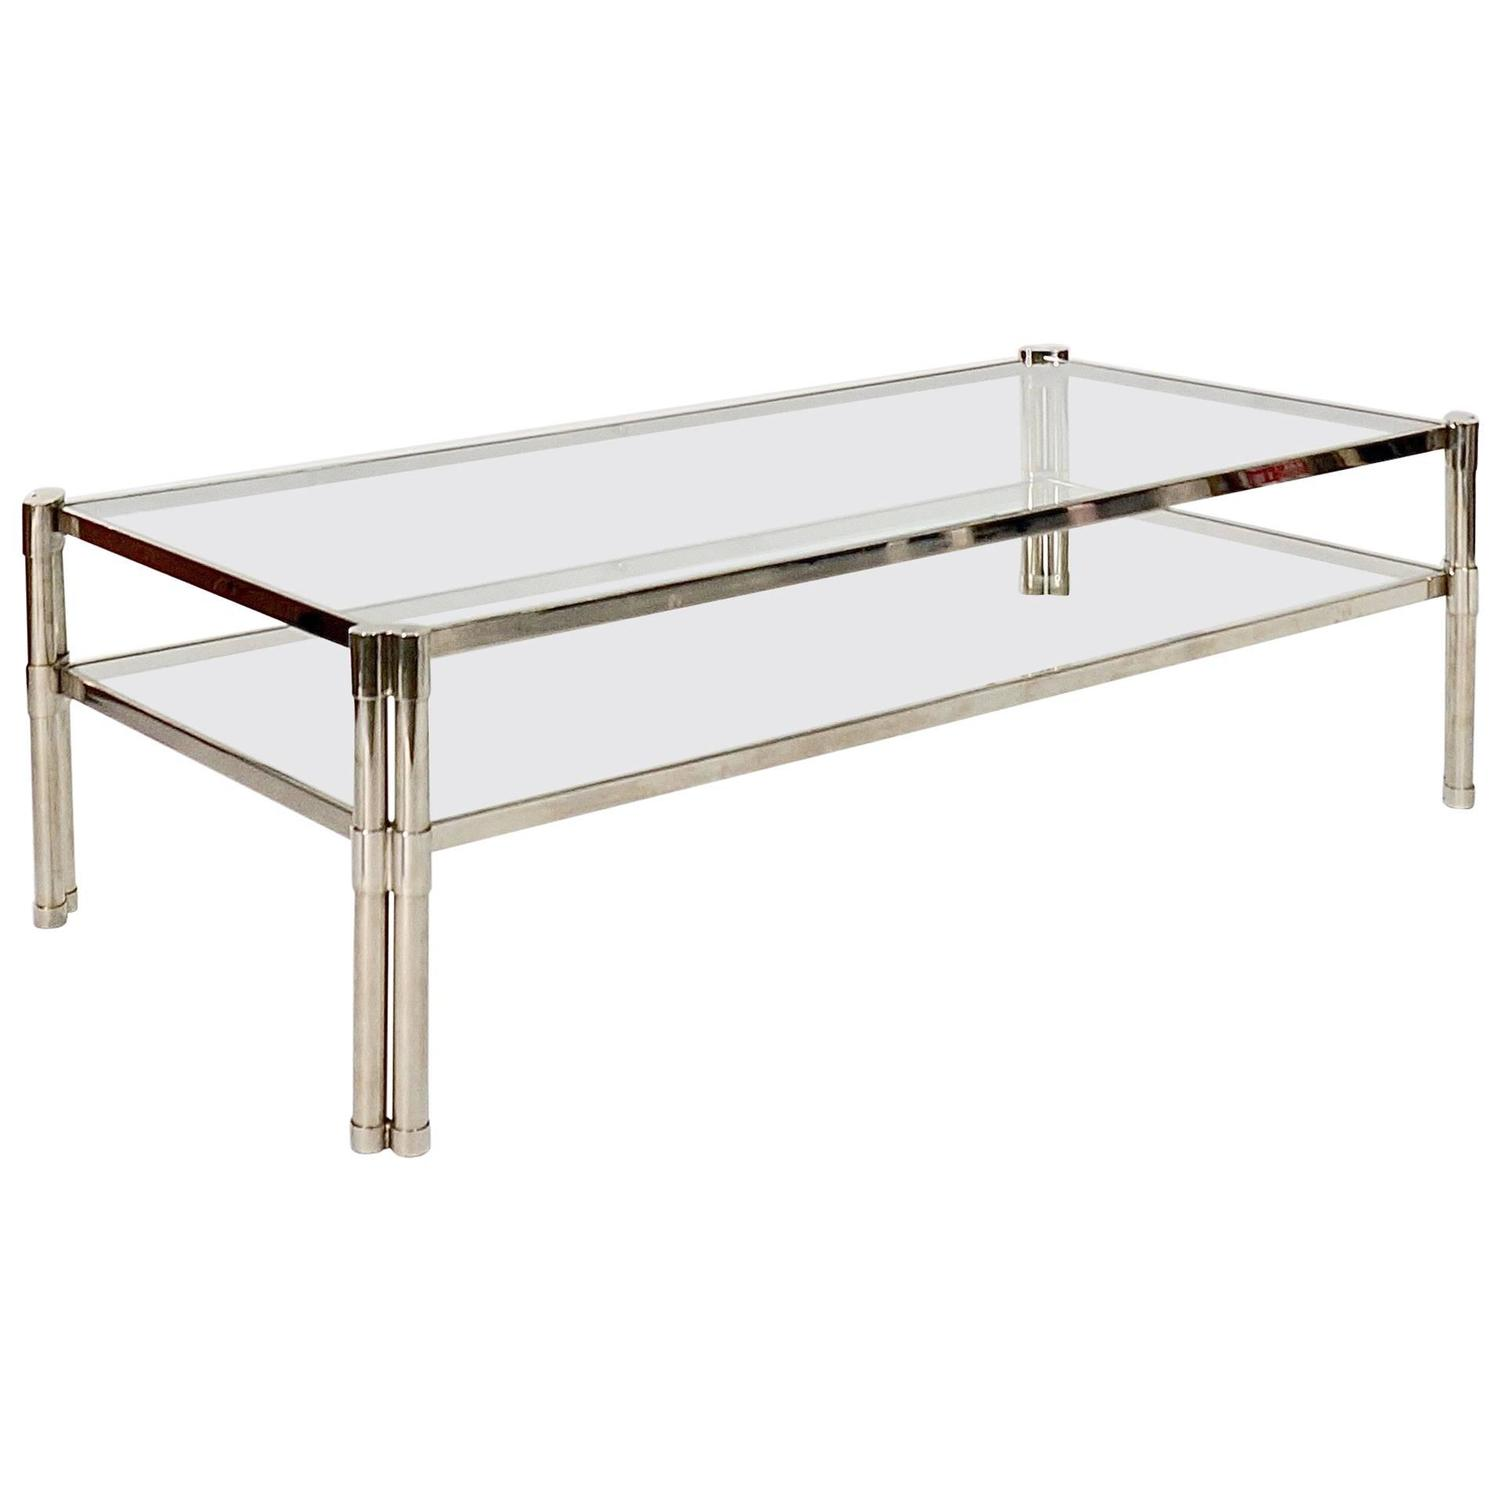 Large Nickel Plated Two Tier Coffee Table At 1stdibs